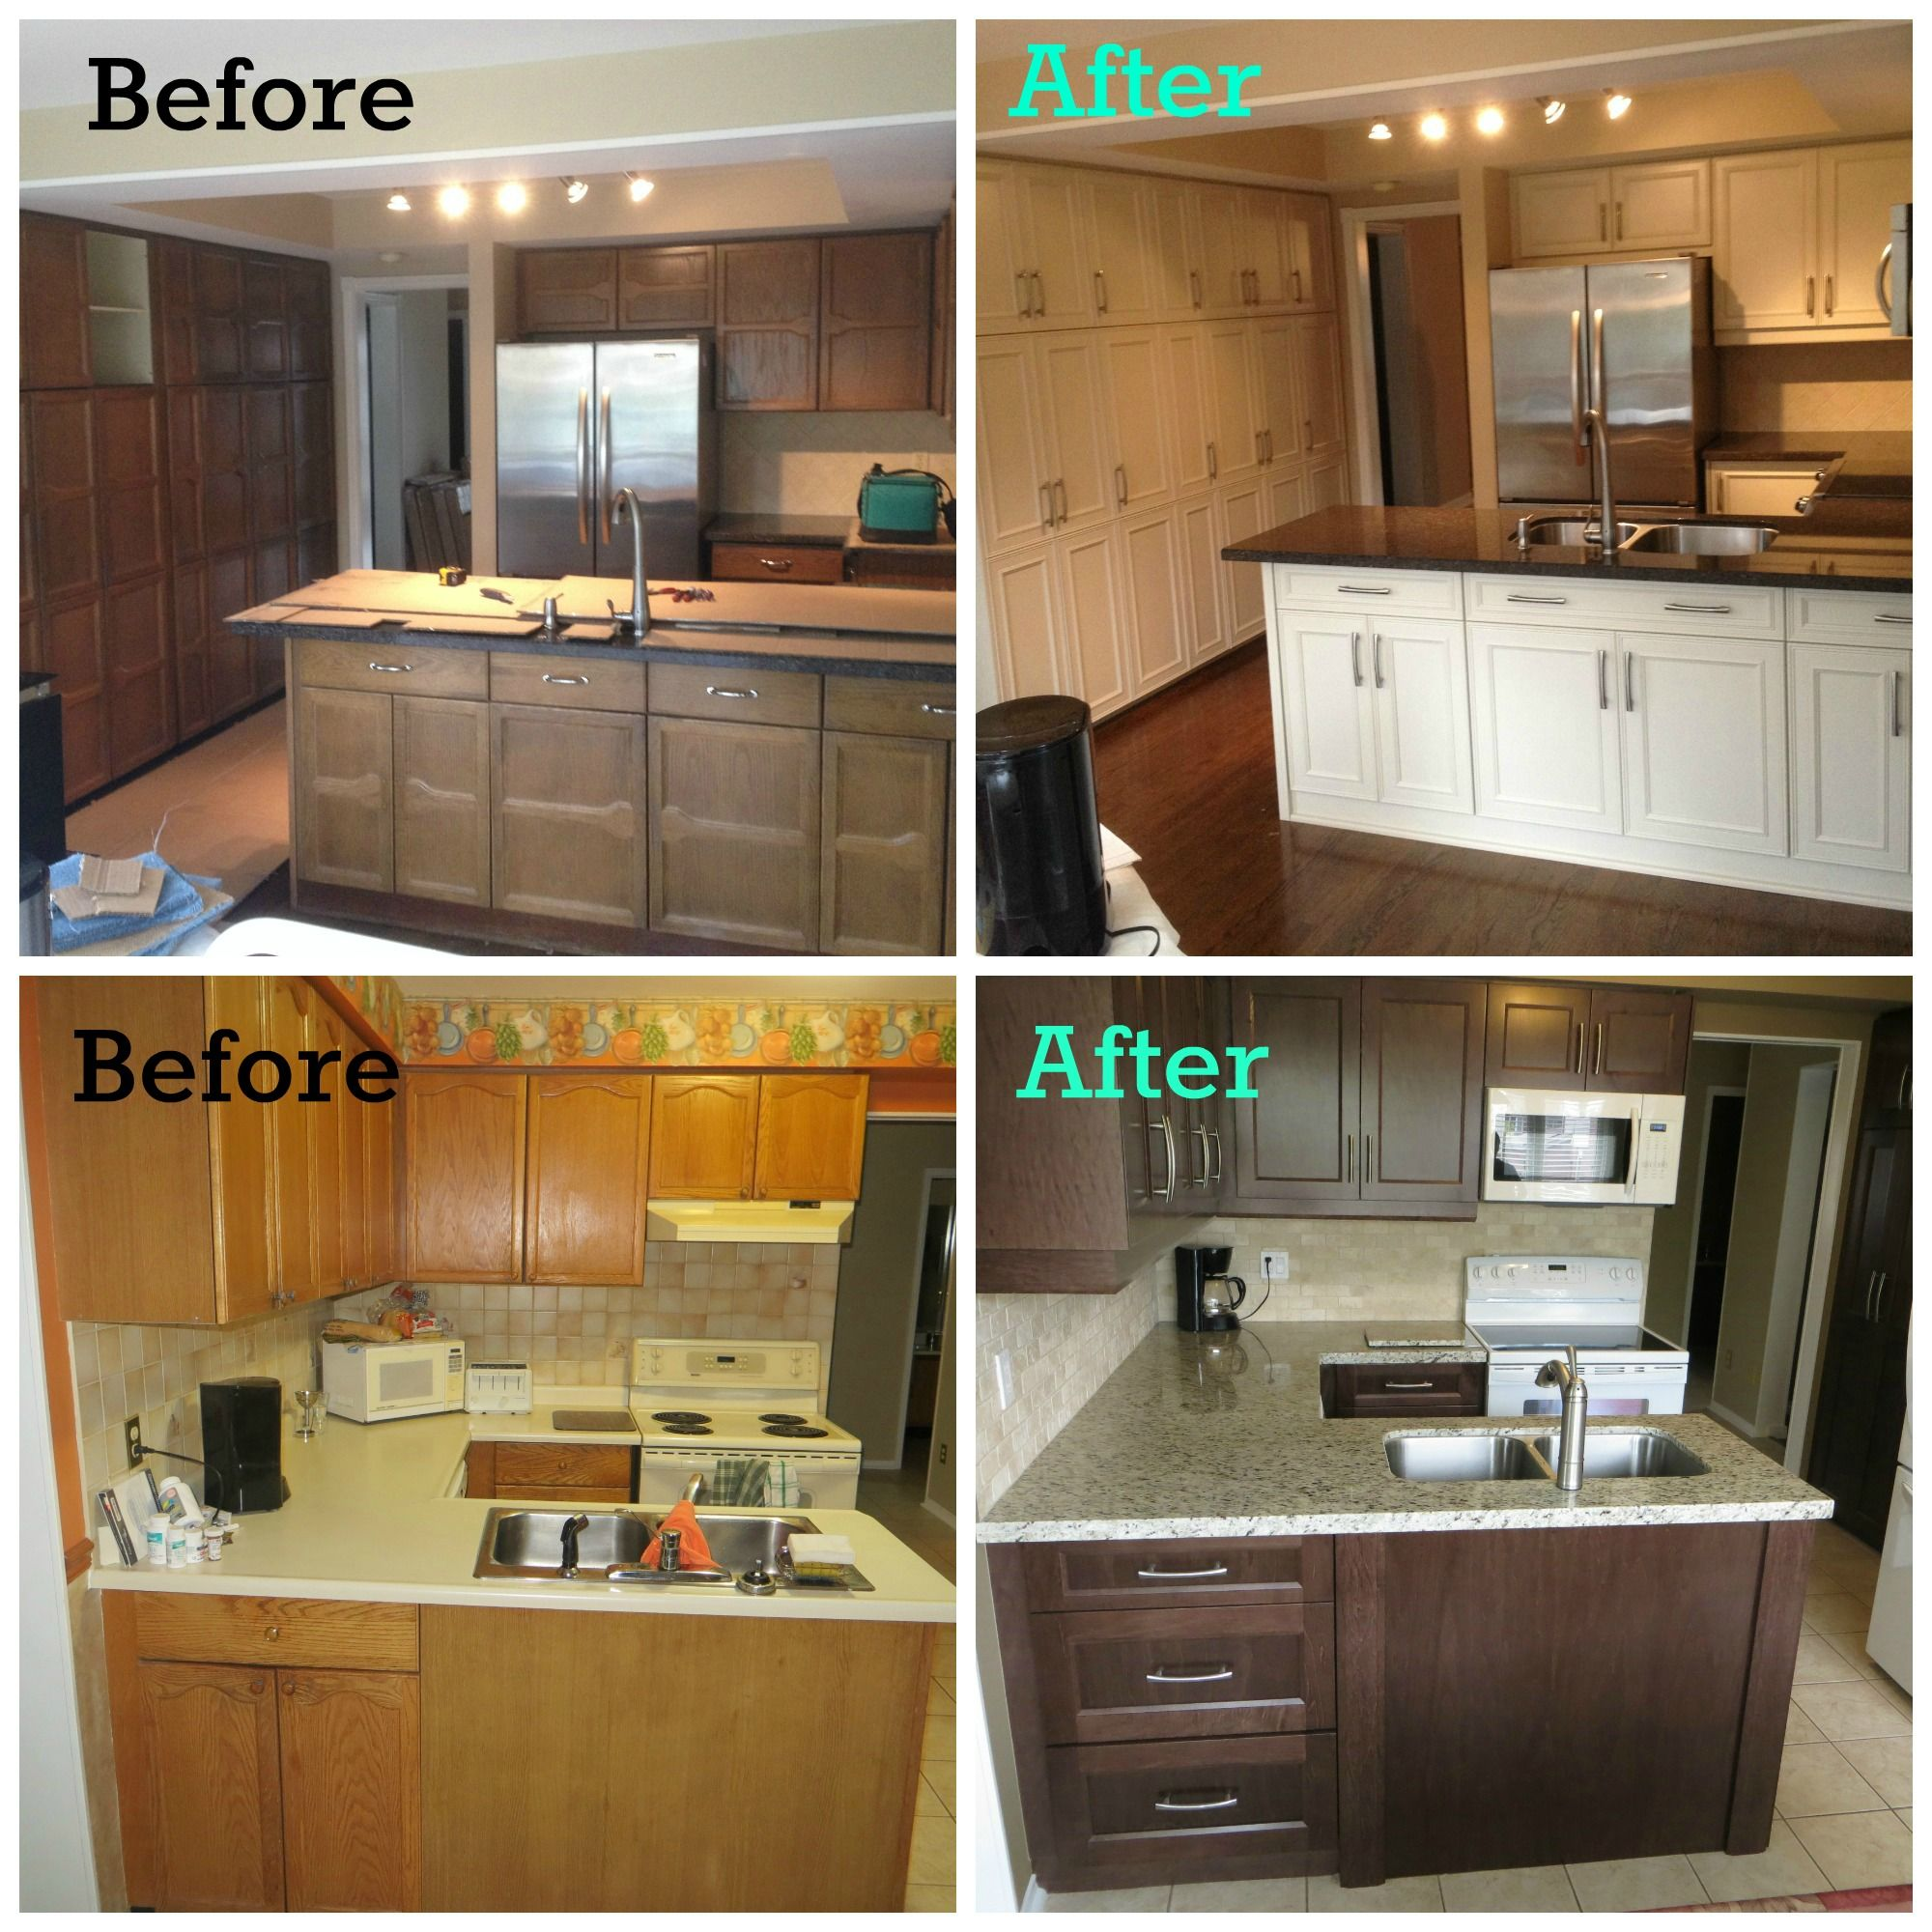 Refacing Old Kitchen Cabinets: Pin On Before And After Kitchens